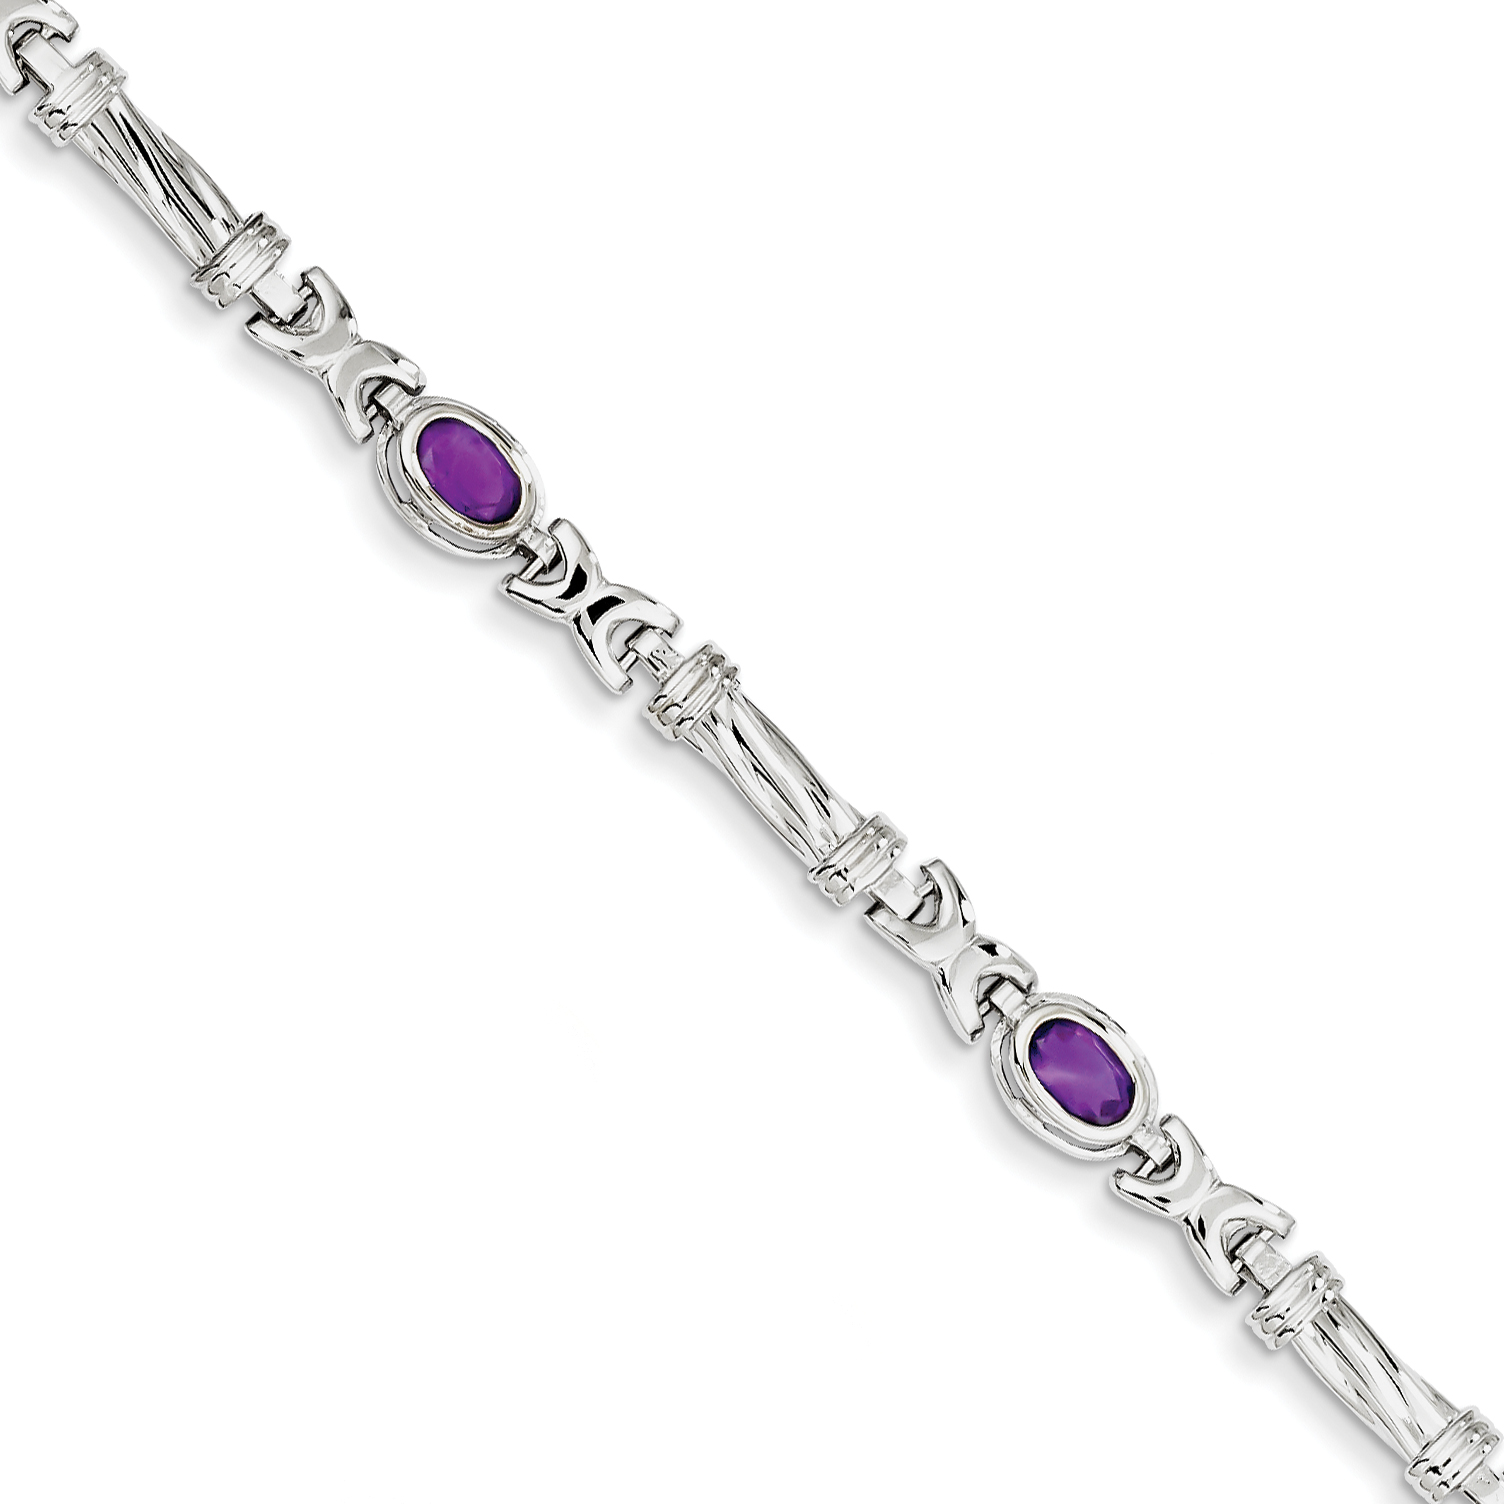 14k Yellow Gold White Amethyst Bracelet by